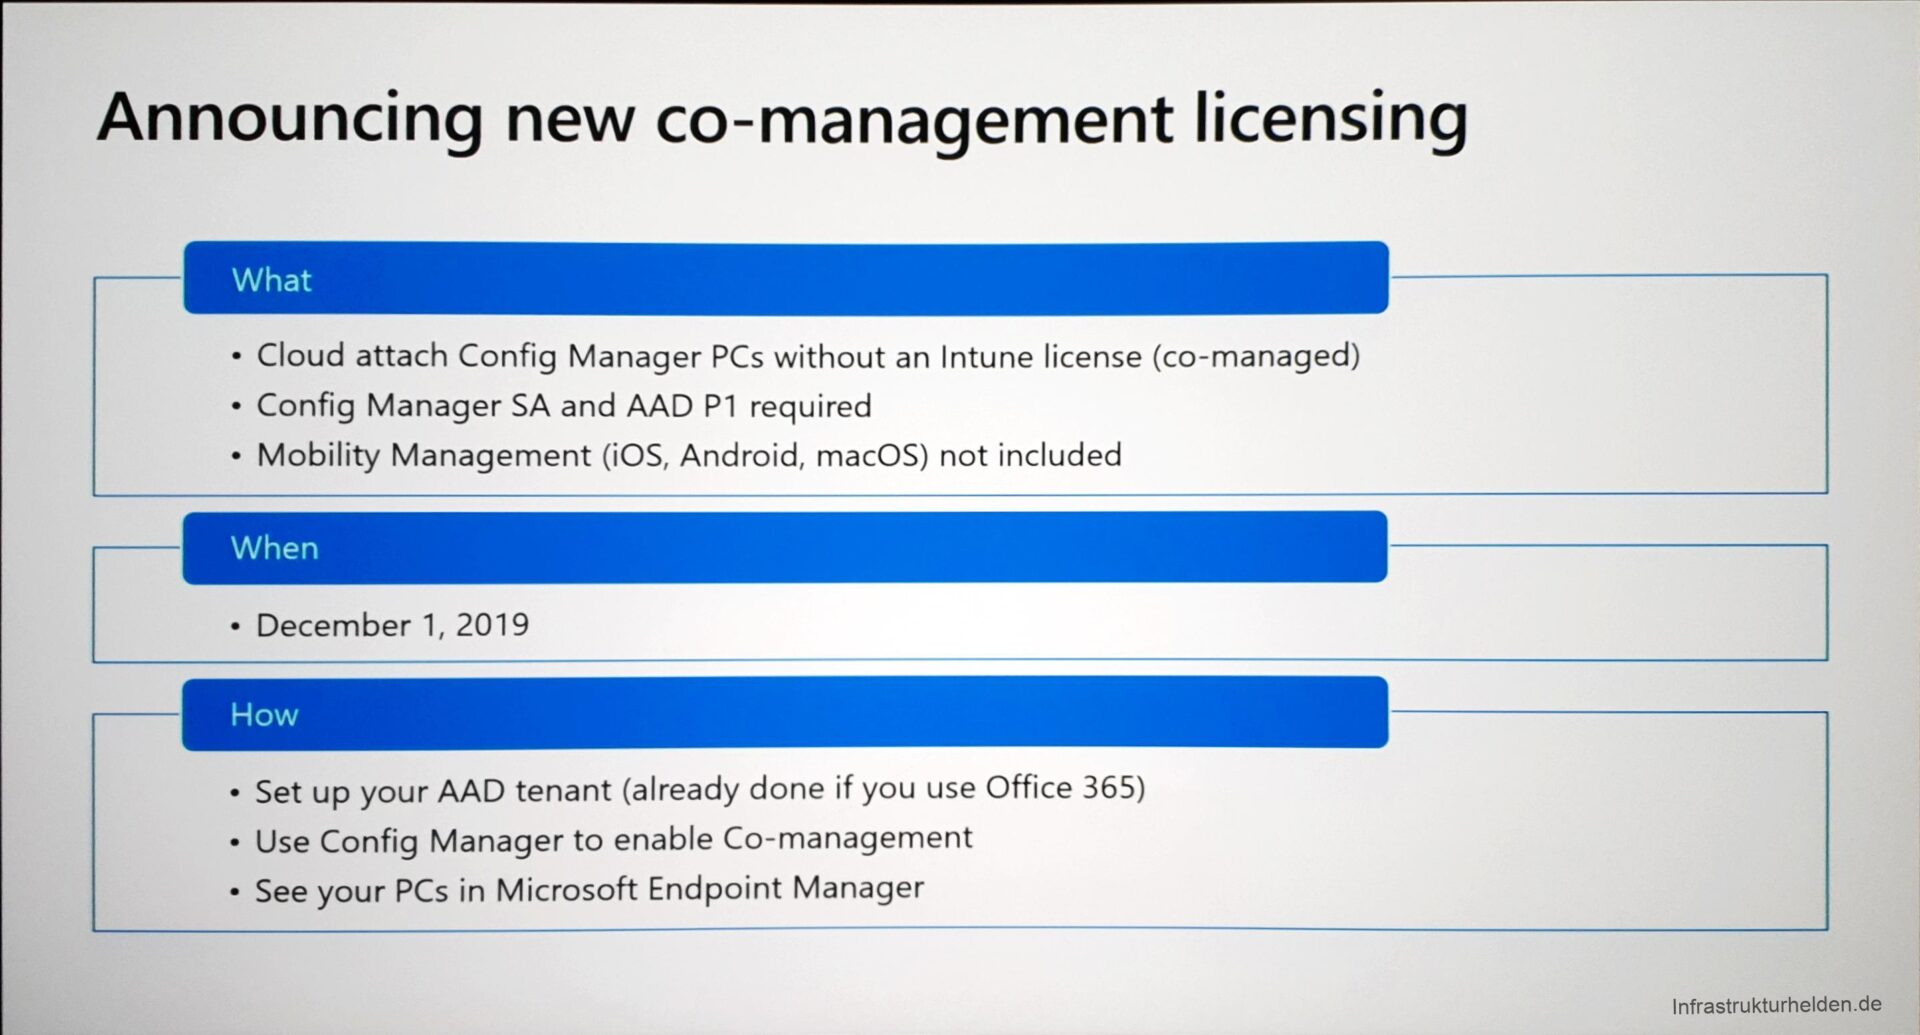 Computergenerierter Alternativtext: Announcing new co-management licensing  What  • Cloud attach Config Manager PCs without an Intune license (co-managed)  • Config Manager SA and AAD PI required  • Mobility Management (iOS, Android, macOS) not included  When  • December 1, 2019  How  • Set up your AAD tenant (already done if you use Office 365)  • Use Config Manager to enable Co-management  • See your PCs in Microsoft Endpoint Manager